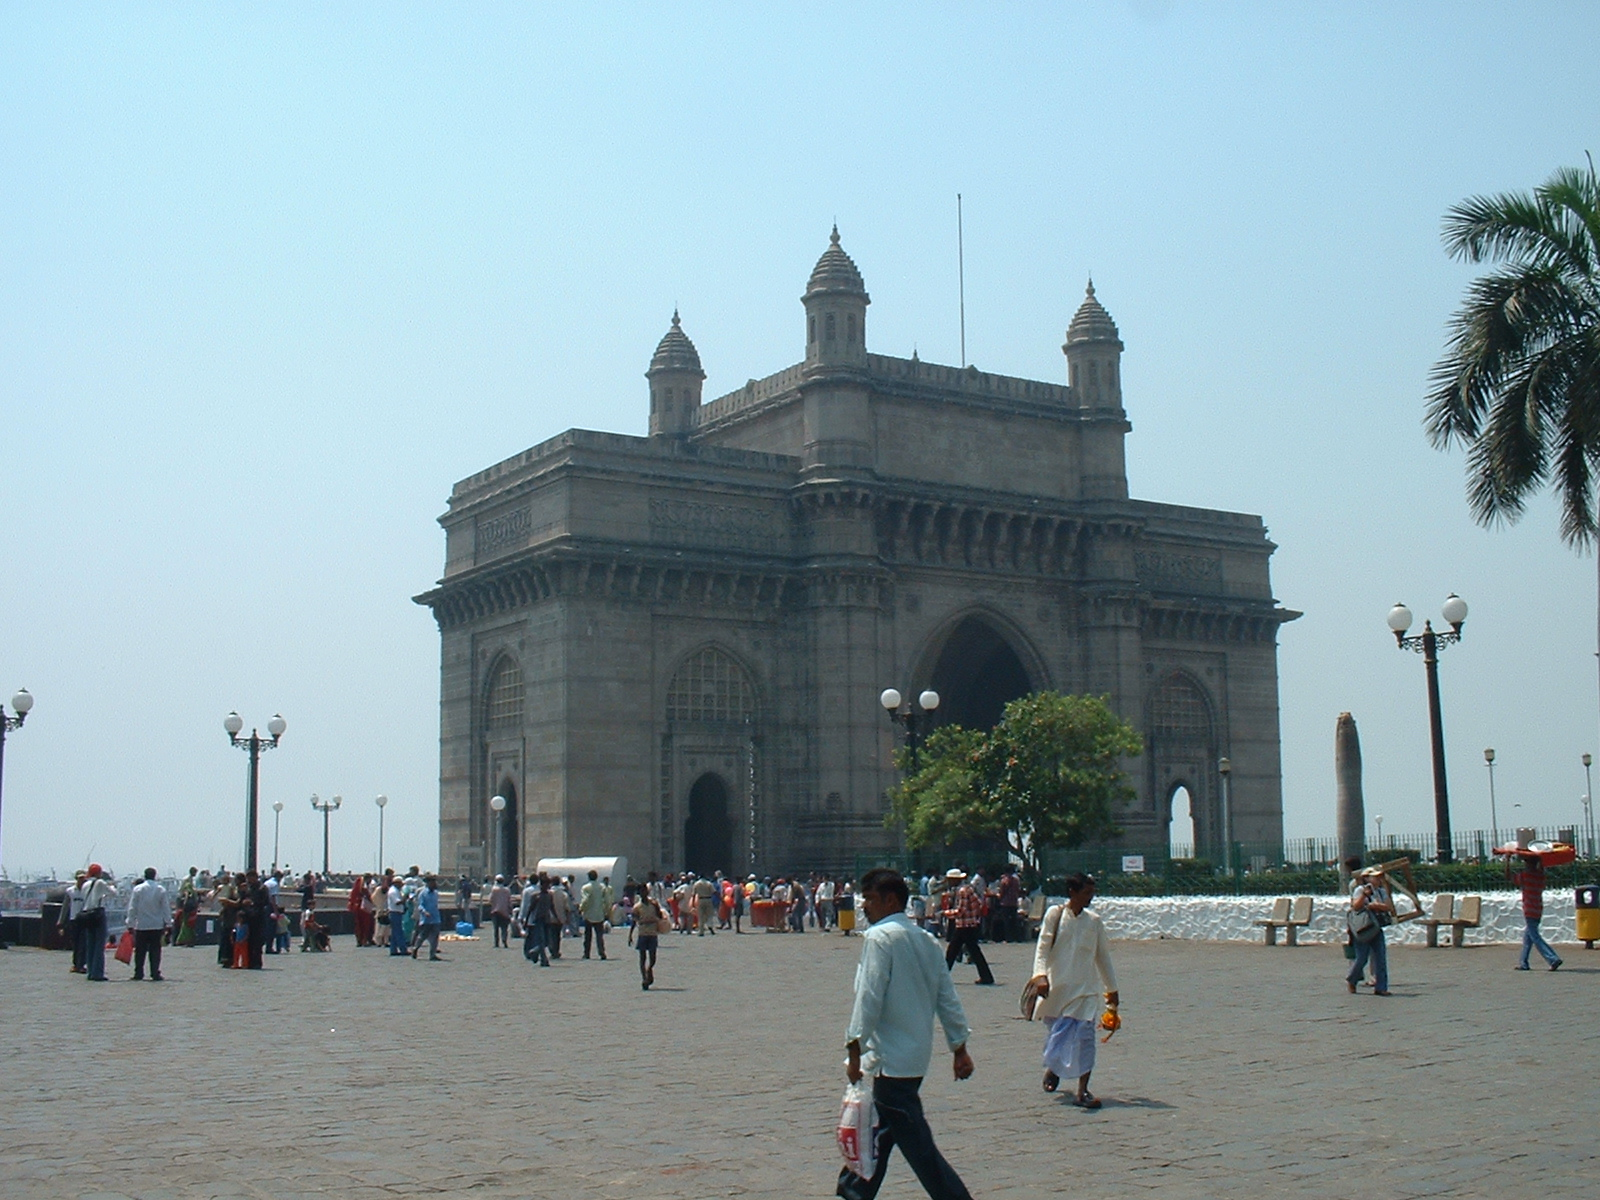 Mumbai (Bombay) Gateway of India